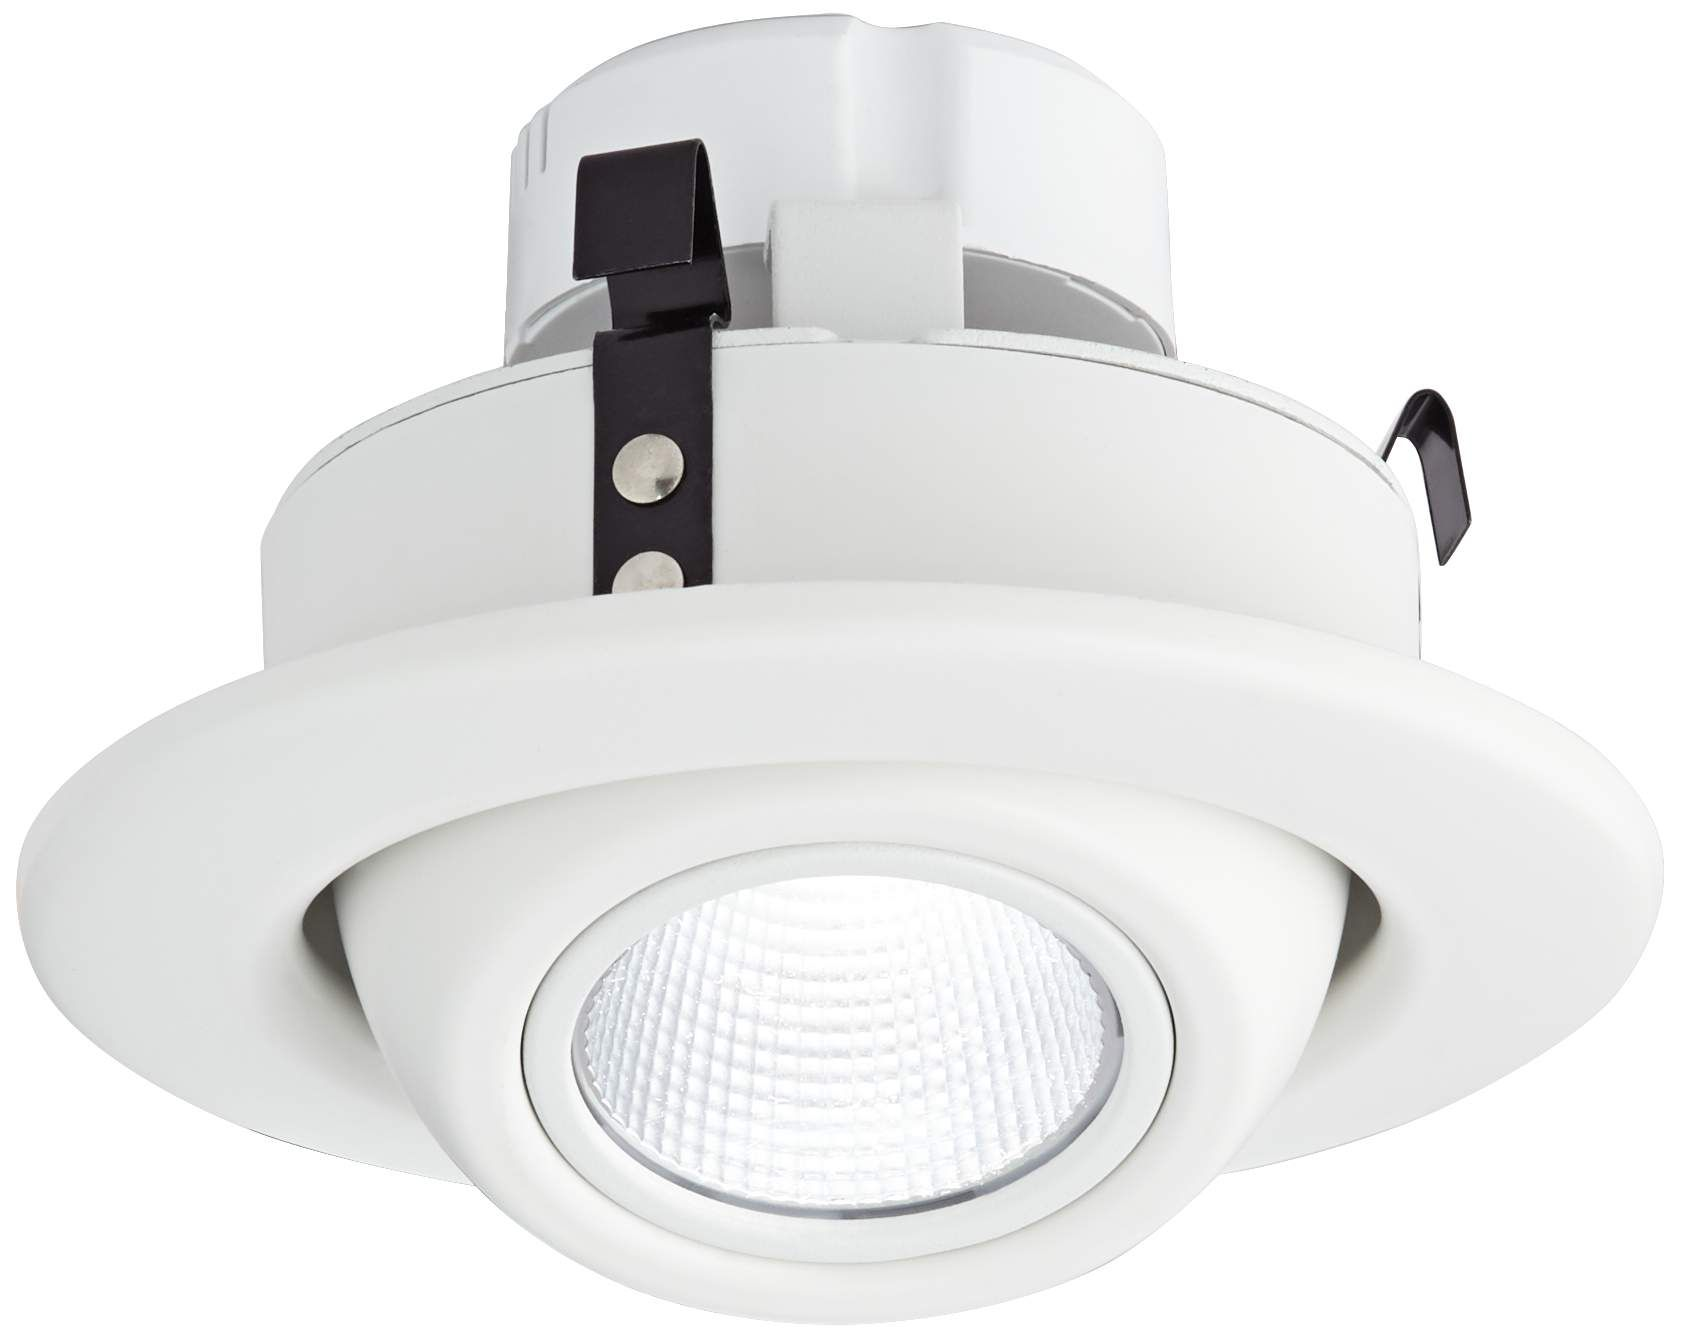 Recessed Lighting 4 White Eyeball 10 Watt Led Retrofit Trim Recessed Lighting Recessed Spotlights Halogen Lamp